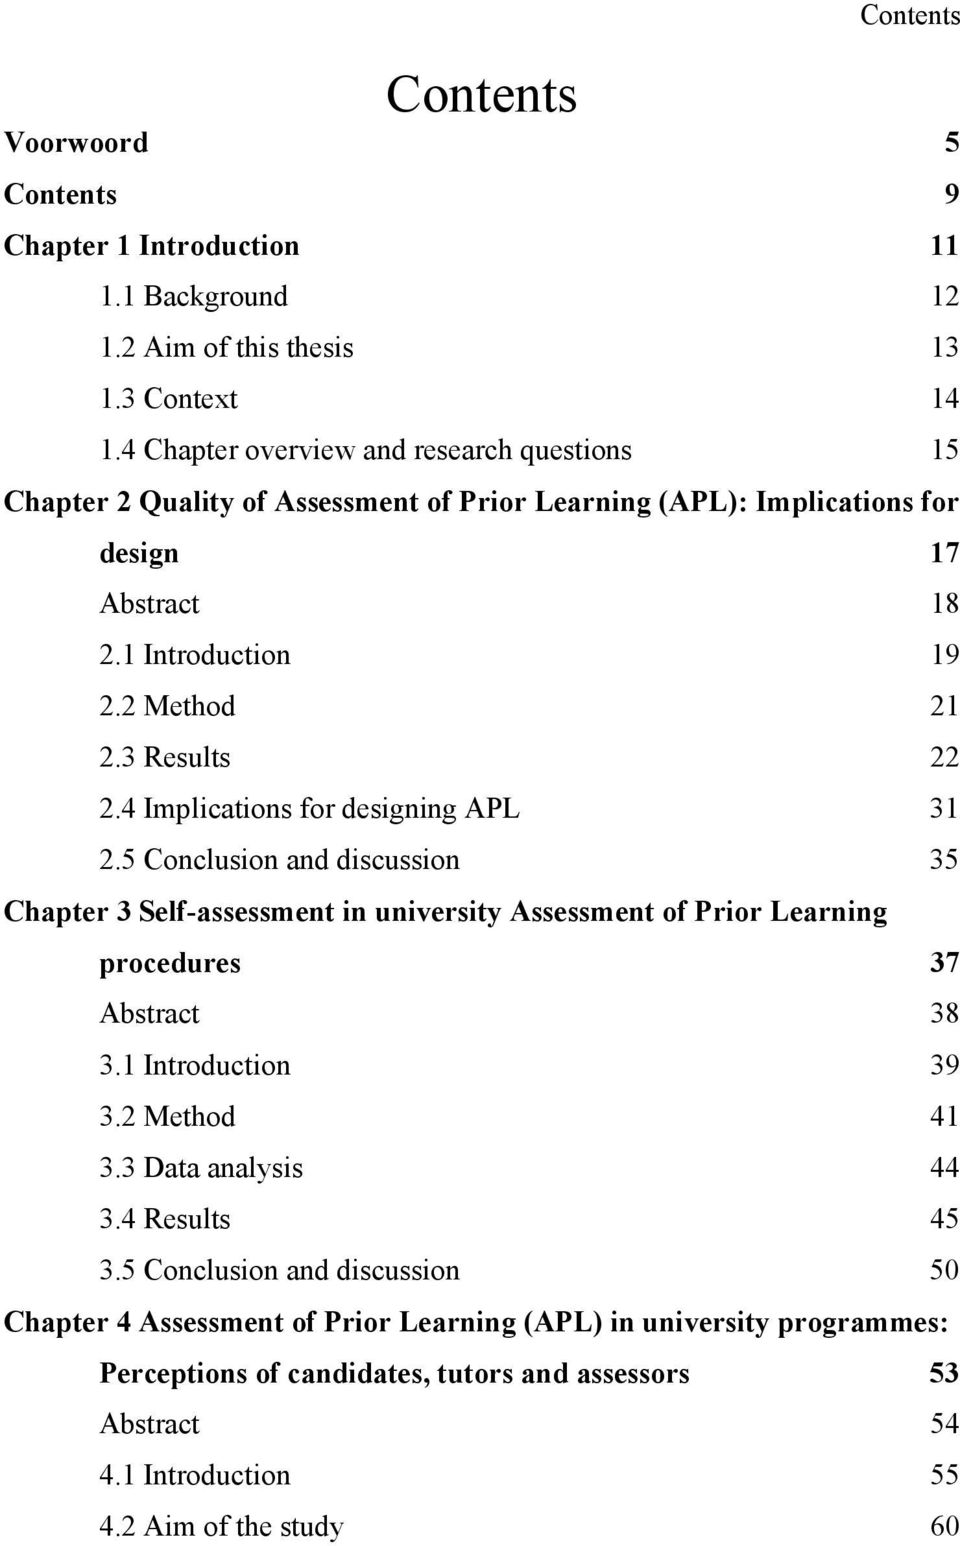 3 Results 22 2.4 Implications for designing APL 31 2.5 Conclusion and discussion 35 Chapter 3 Self-assessment in university Assessment of Prior Learning procedures 37 Abstract 38 3.